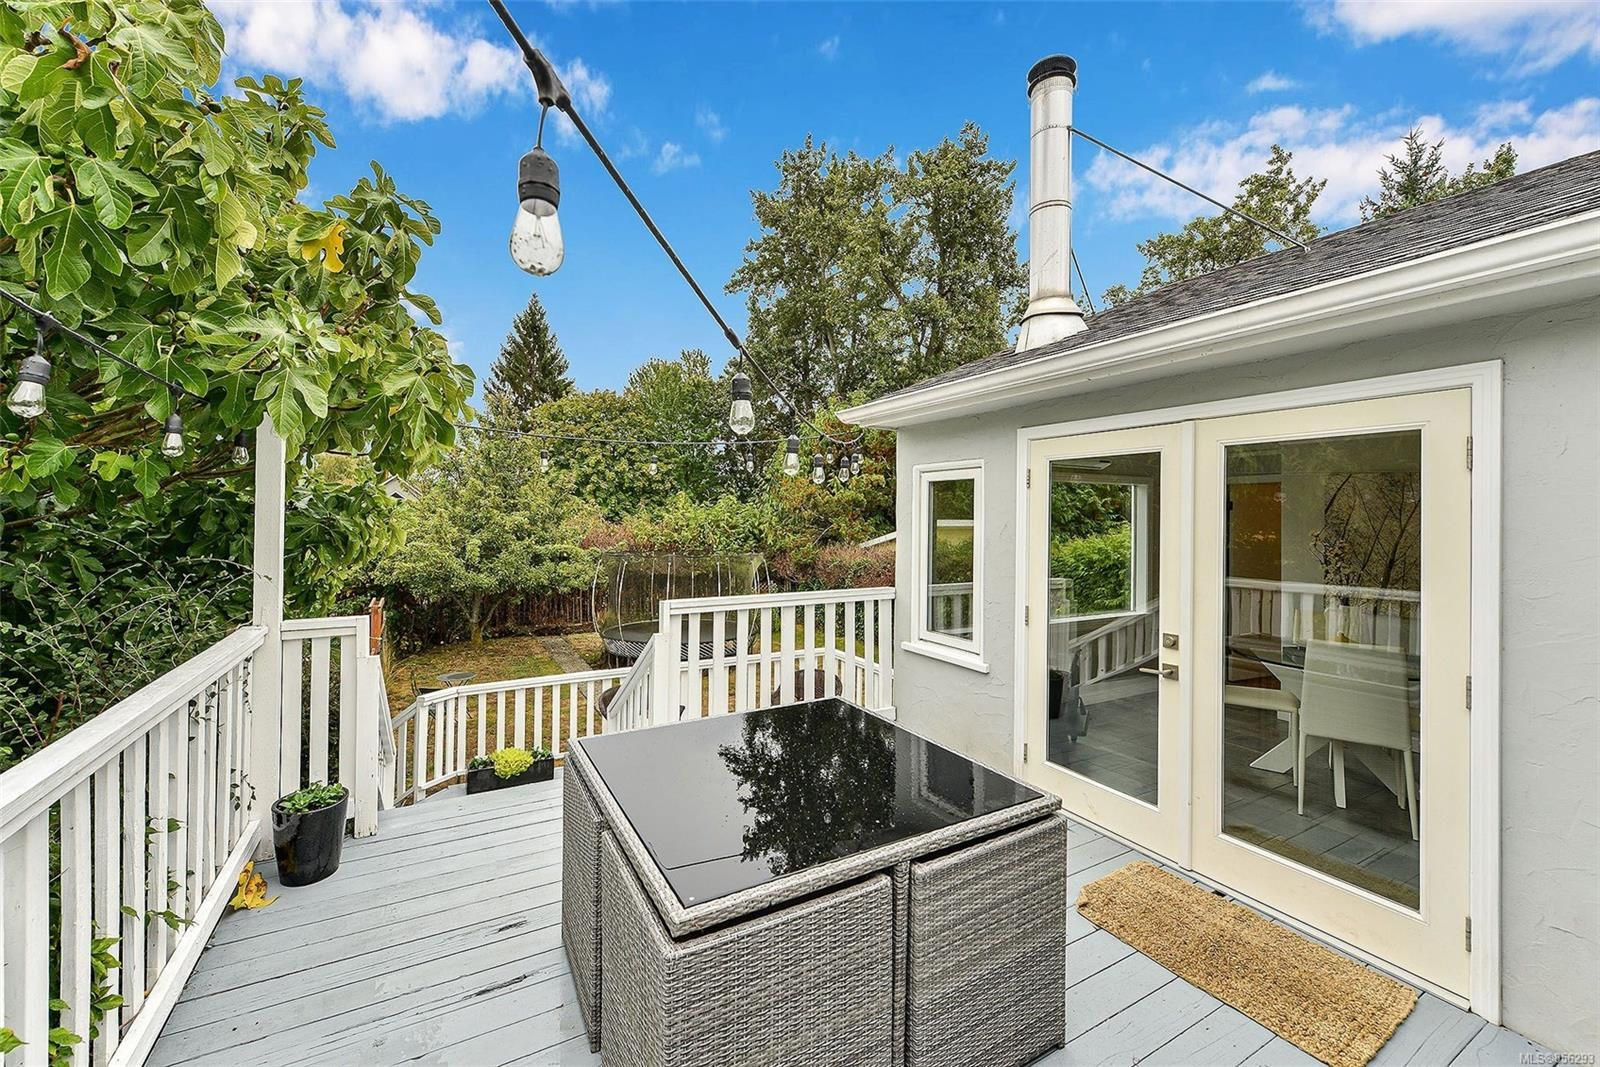 Photo 30: Photos: 1753 Armstrong Ave in : OB North Oak Bay House for sale (Oak Bay)  : MLS®# 856293